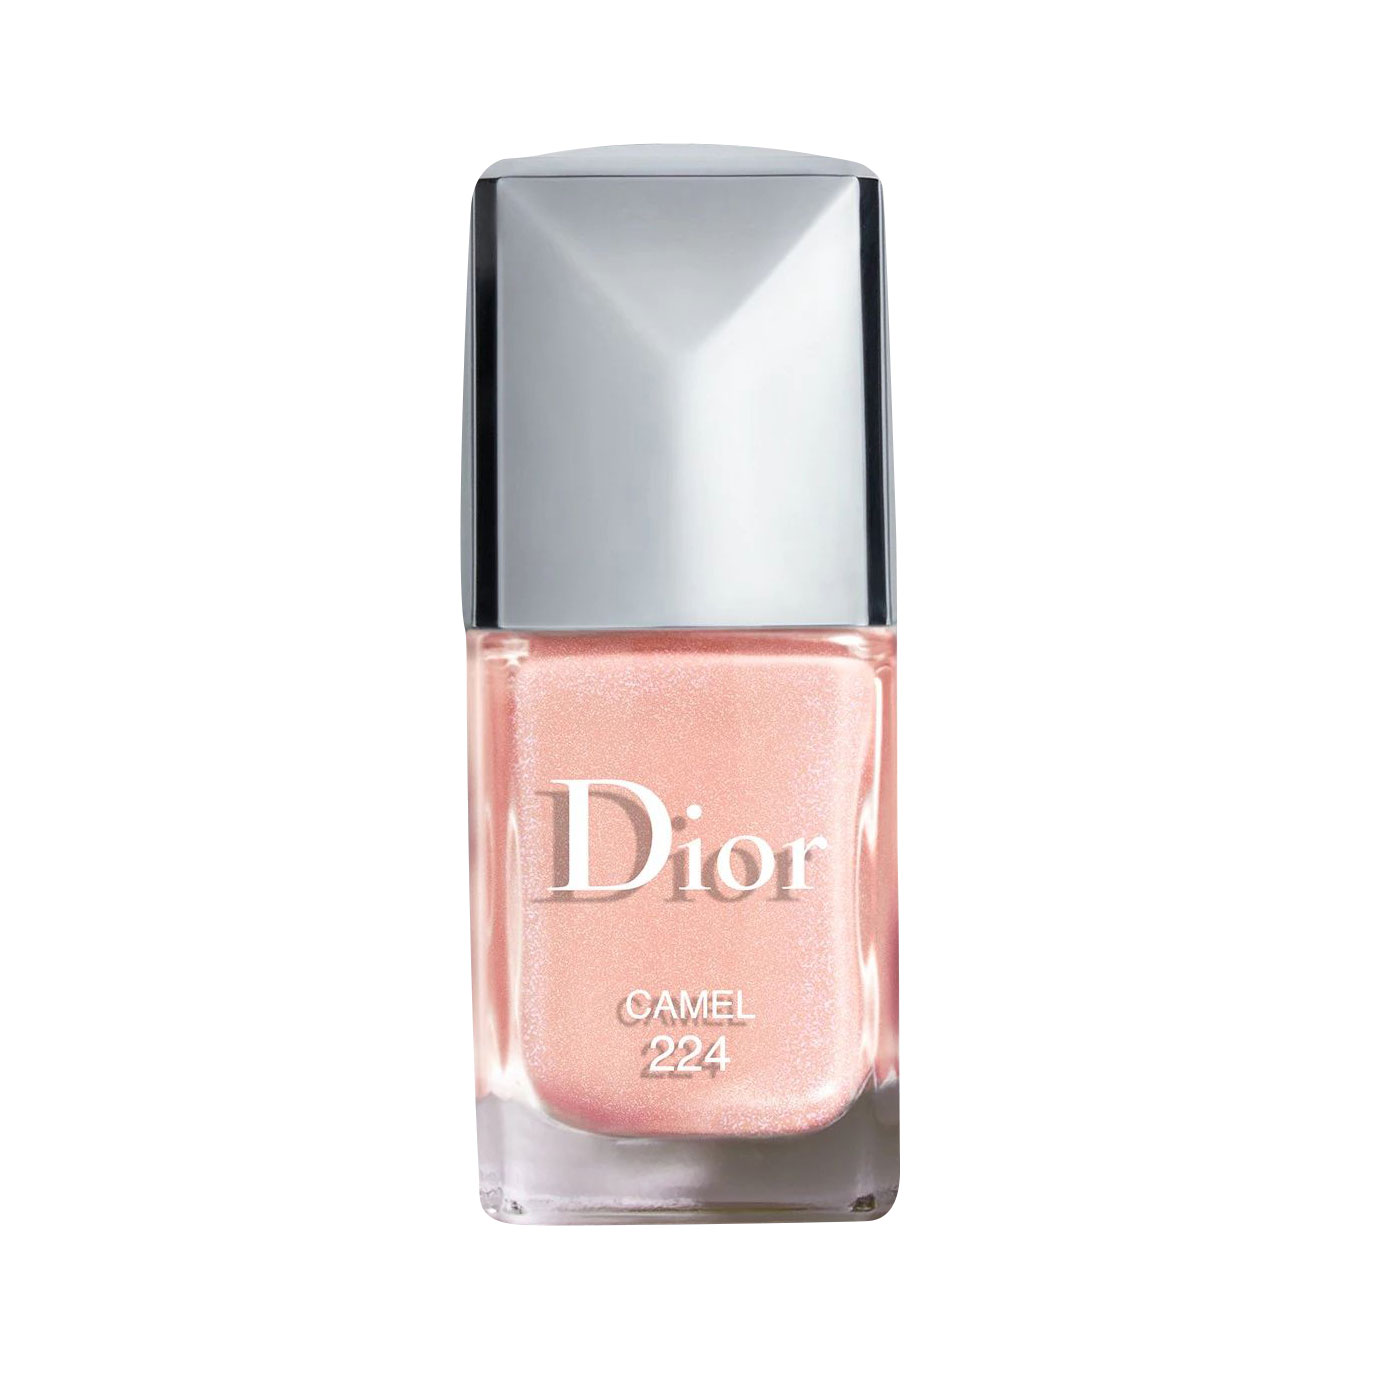 Pearlescent Nude: Dior Vernis in Camel